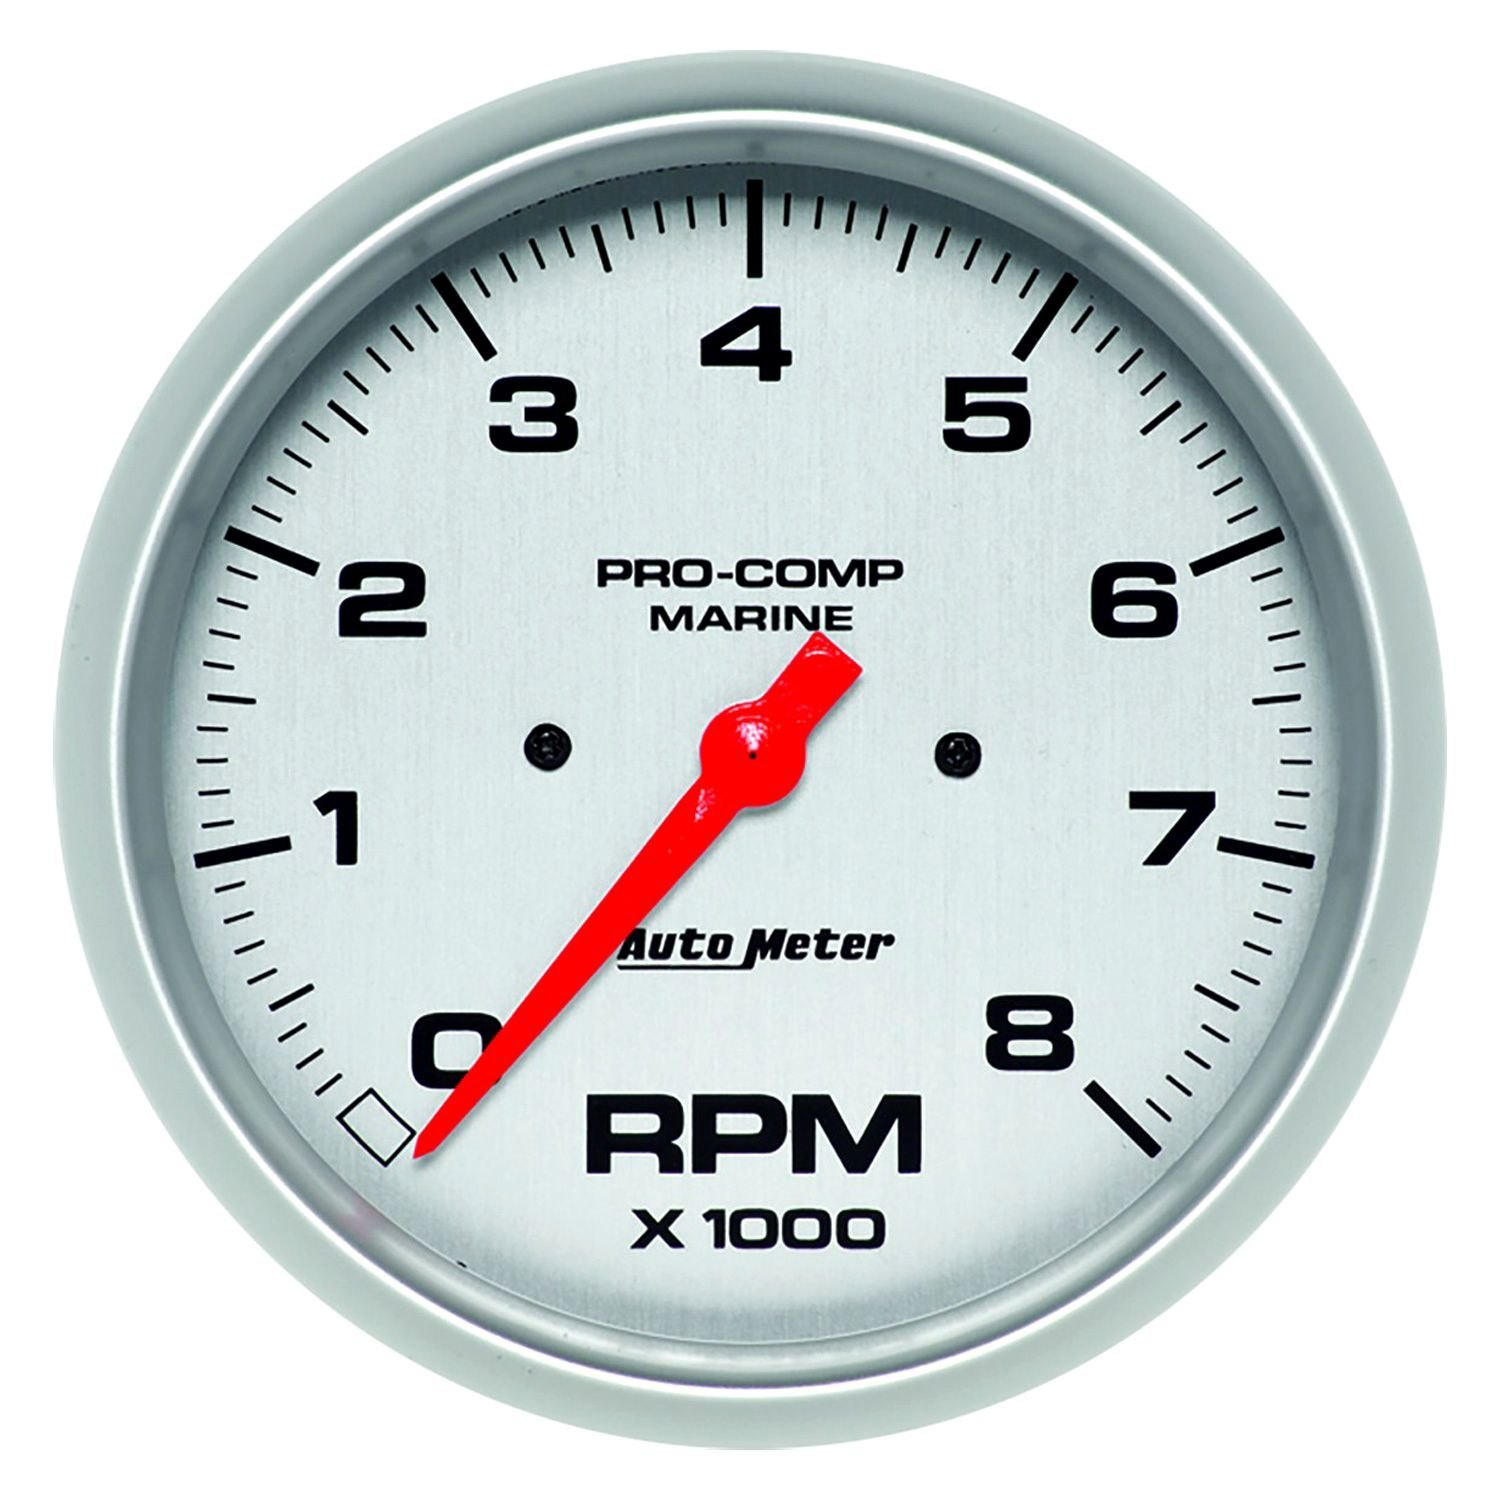 Rpm Gauge Quotes Autometer Cobalt Tach Wiring Diagram Along With Auto Meter 200797 33 Marine Silver Tachometer In Dash